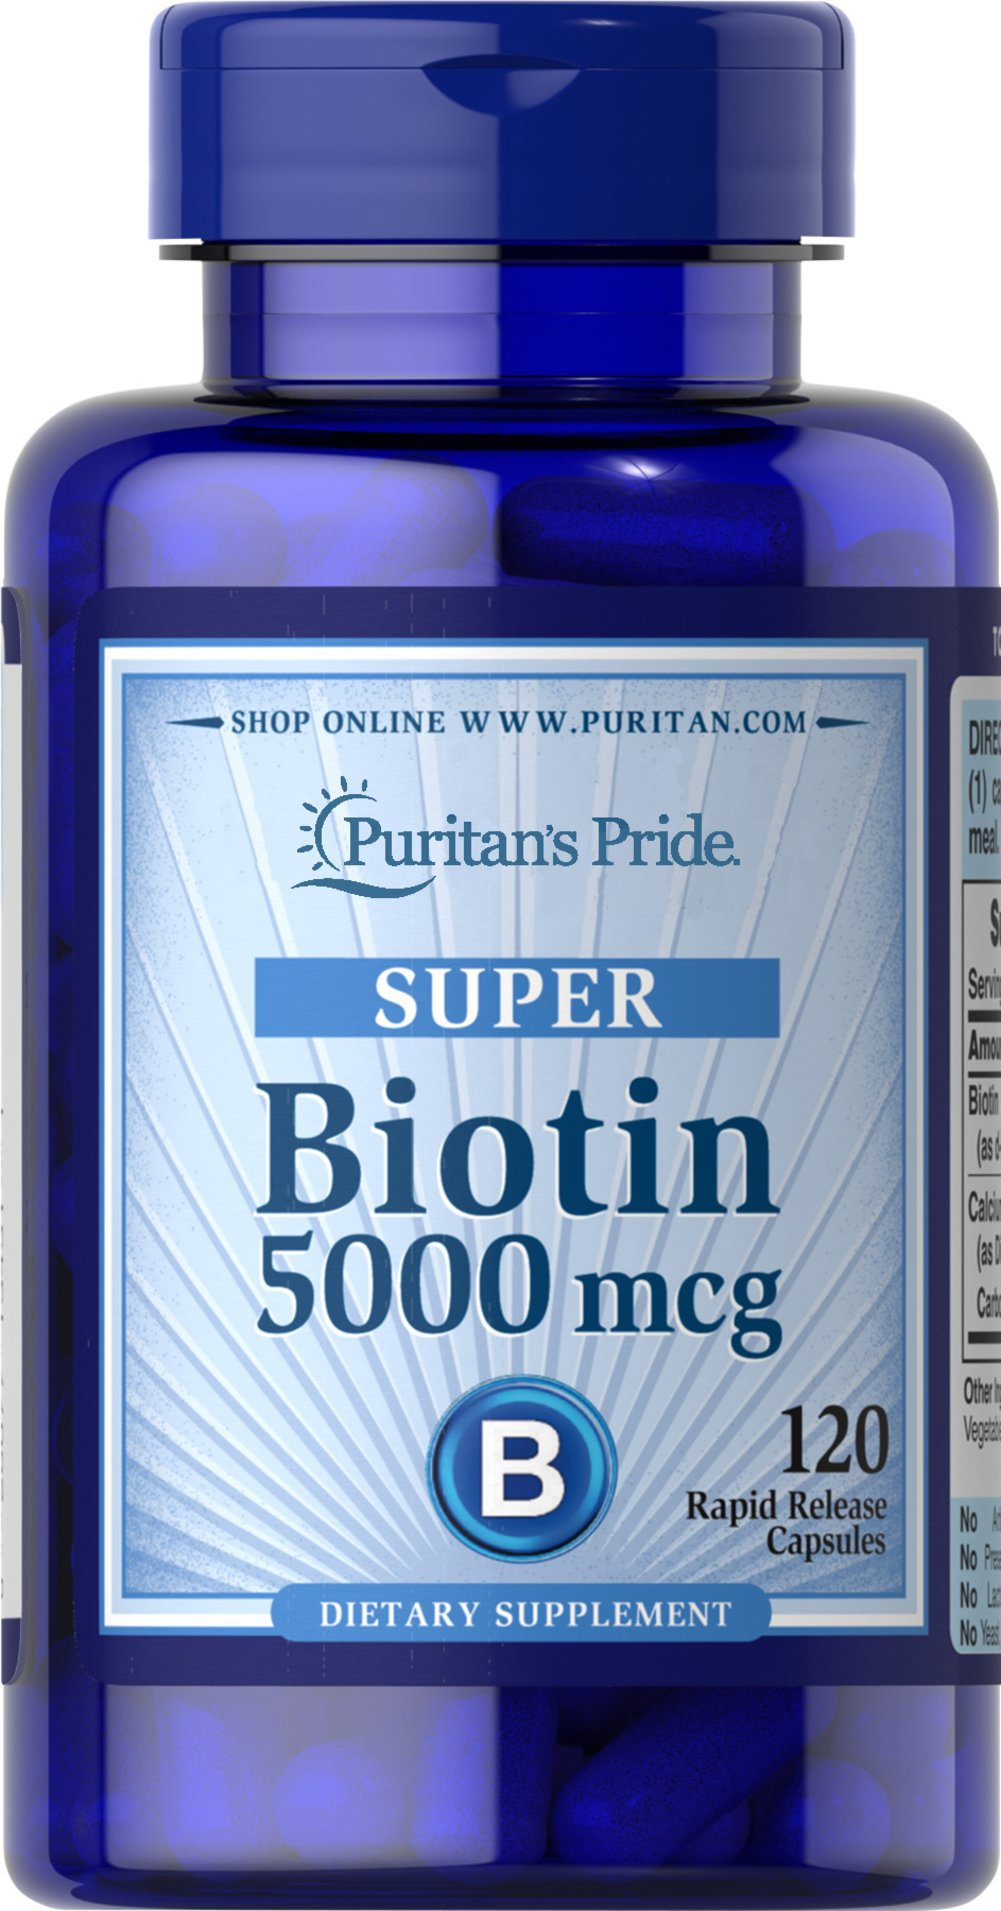 Biotin 5000 mcg <p>Supports Skin & Hair Health**</p><p>Found in foods such as oatmeal and soy, Biotin, a water-soluble B vitamin, assists in energy metabolism in cells.** Biotin helps to support healthy skin and hair.**</p>   120 Capsules 5000 mcg $17.99